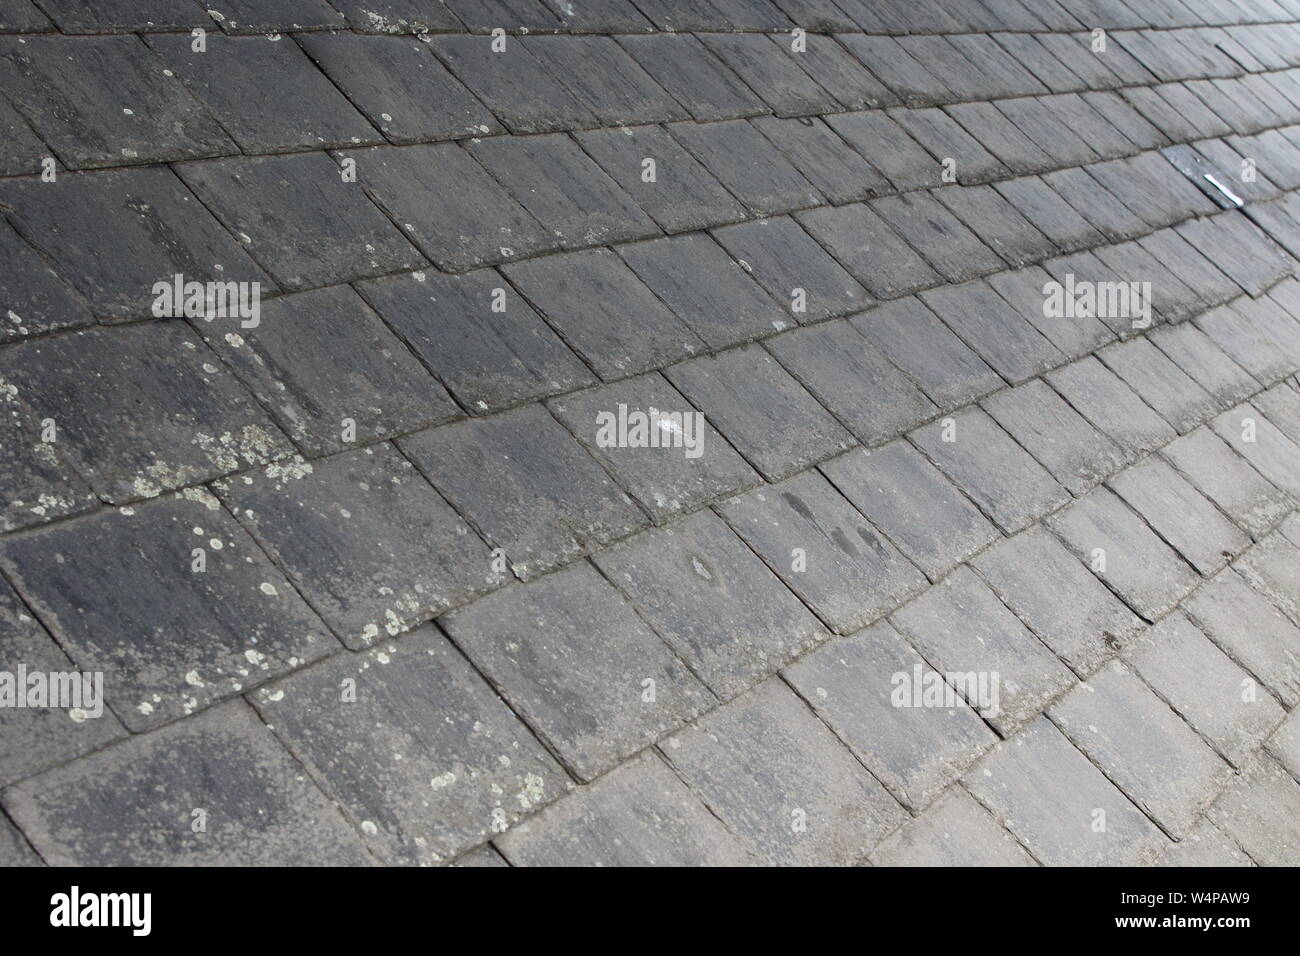 Slates laid on a roof, showing the regurlar repeat pattern, with each row offset to the lower one with a slipped tile fixed with a lead stripe to rear Stock Photo